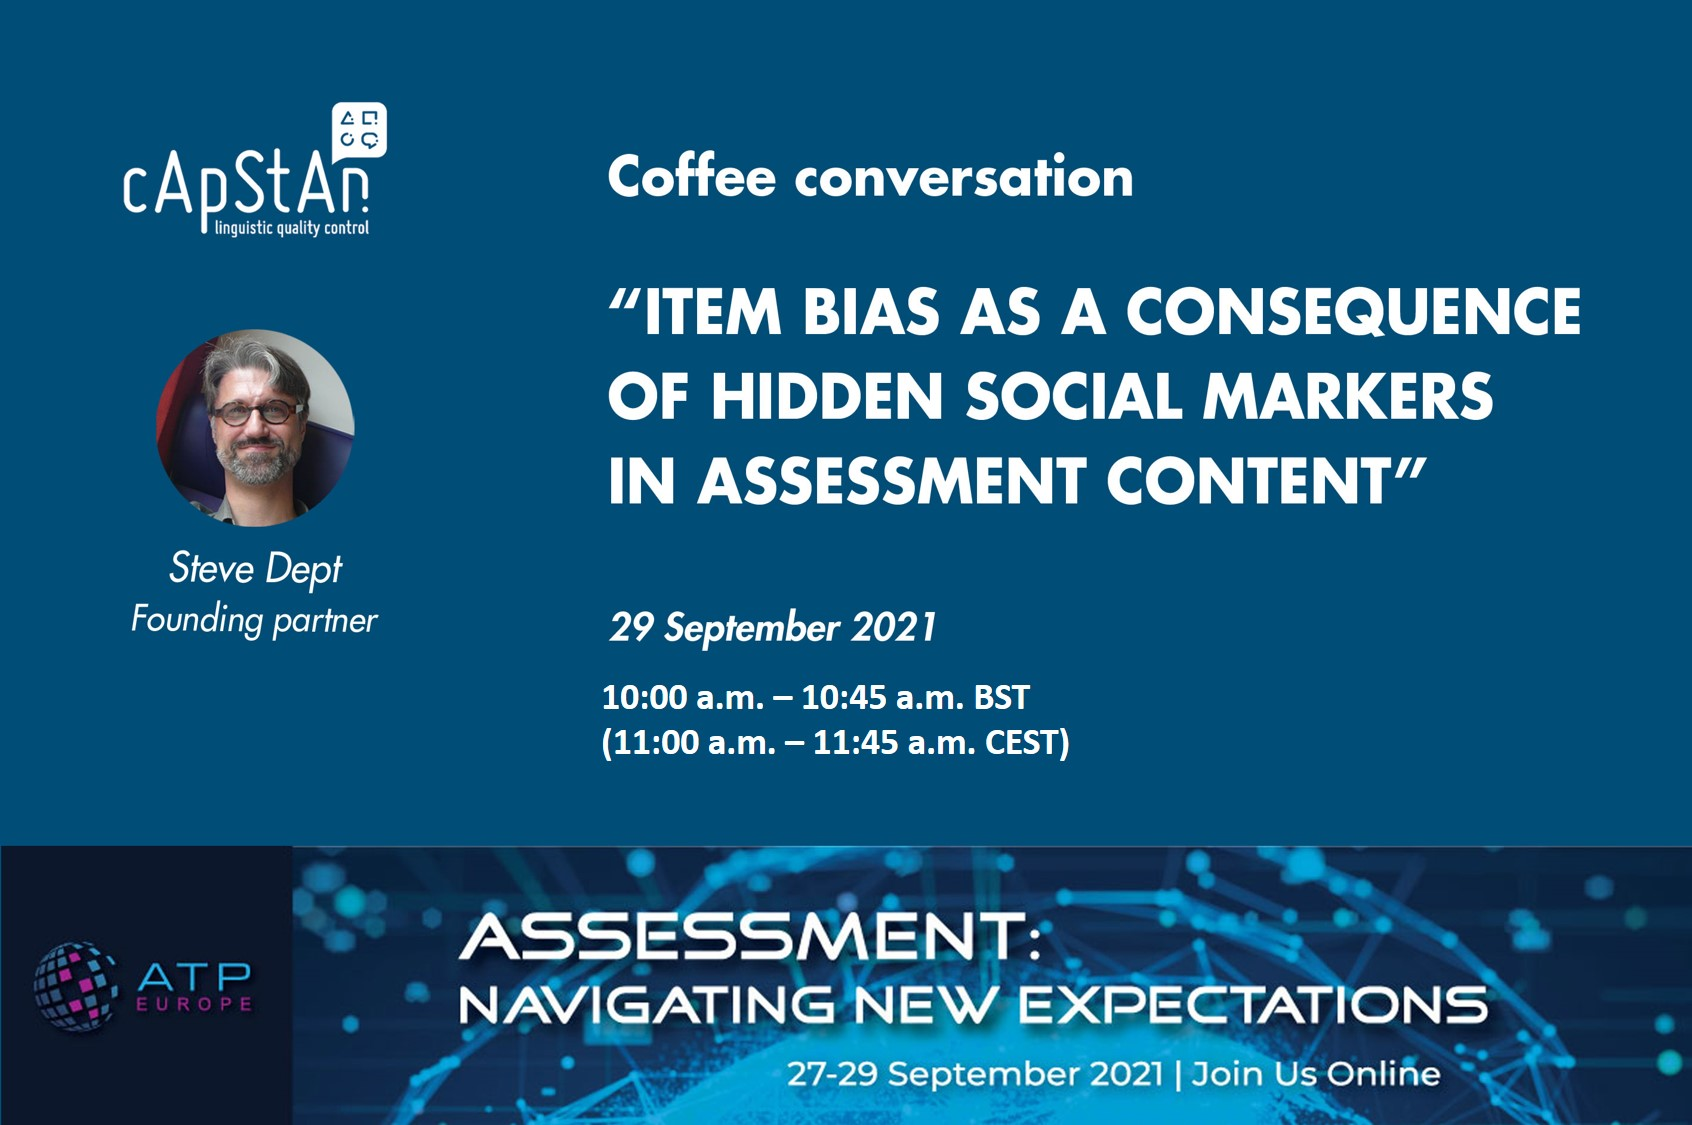 Item bias as a consequence of hidden social markers in assessment content